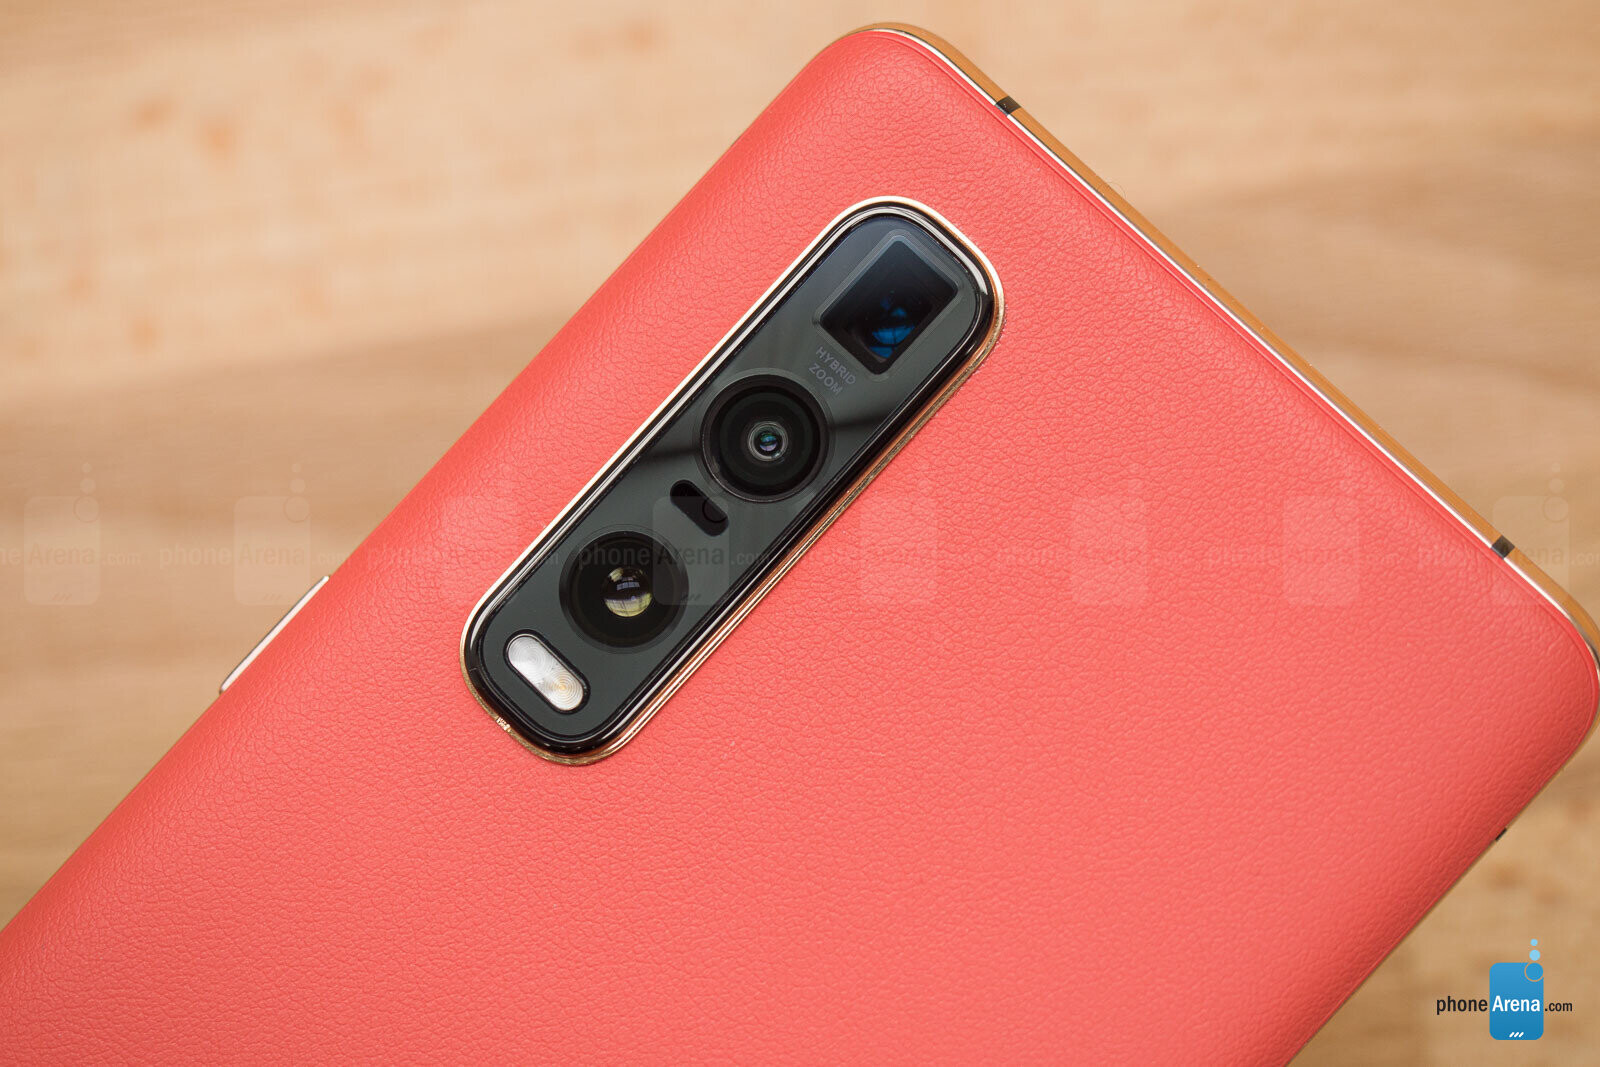 Oppo-Find-X2-Pro-Review-005.jpg